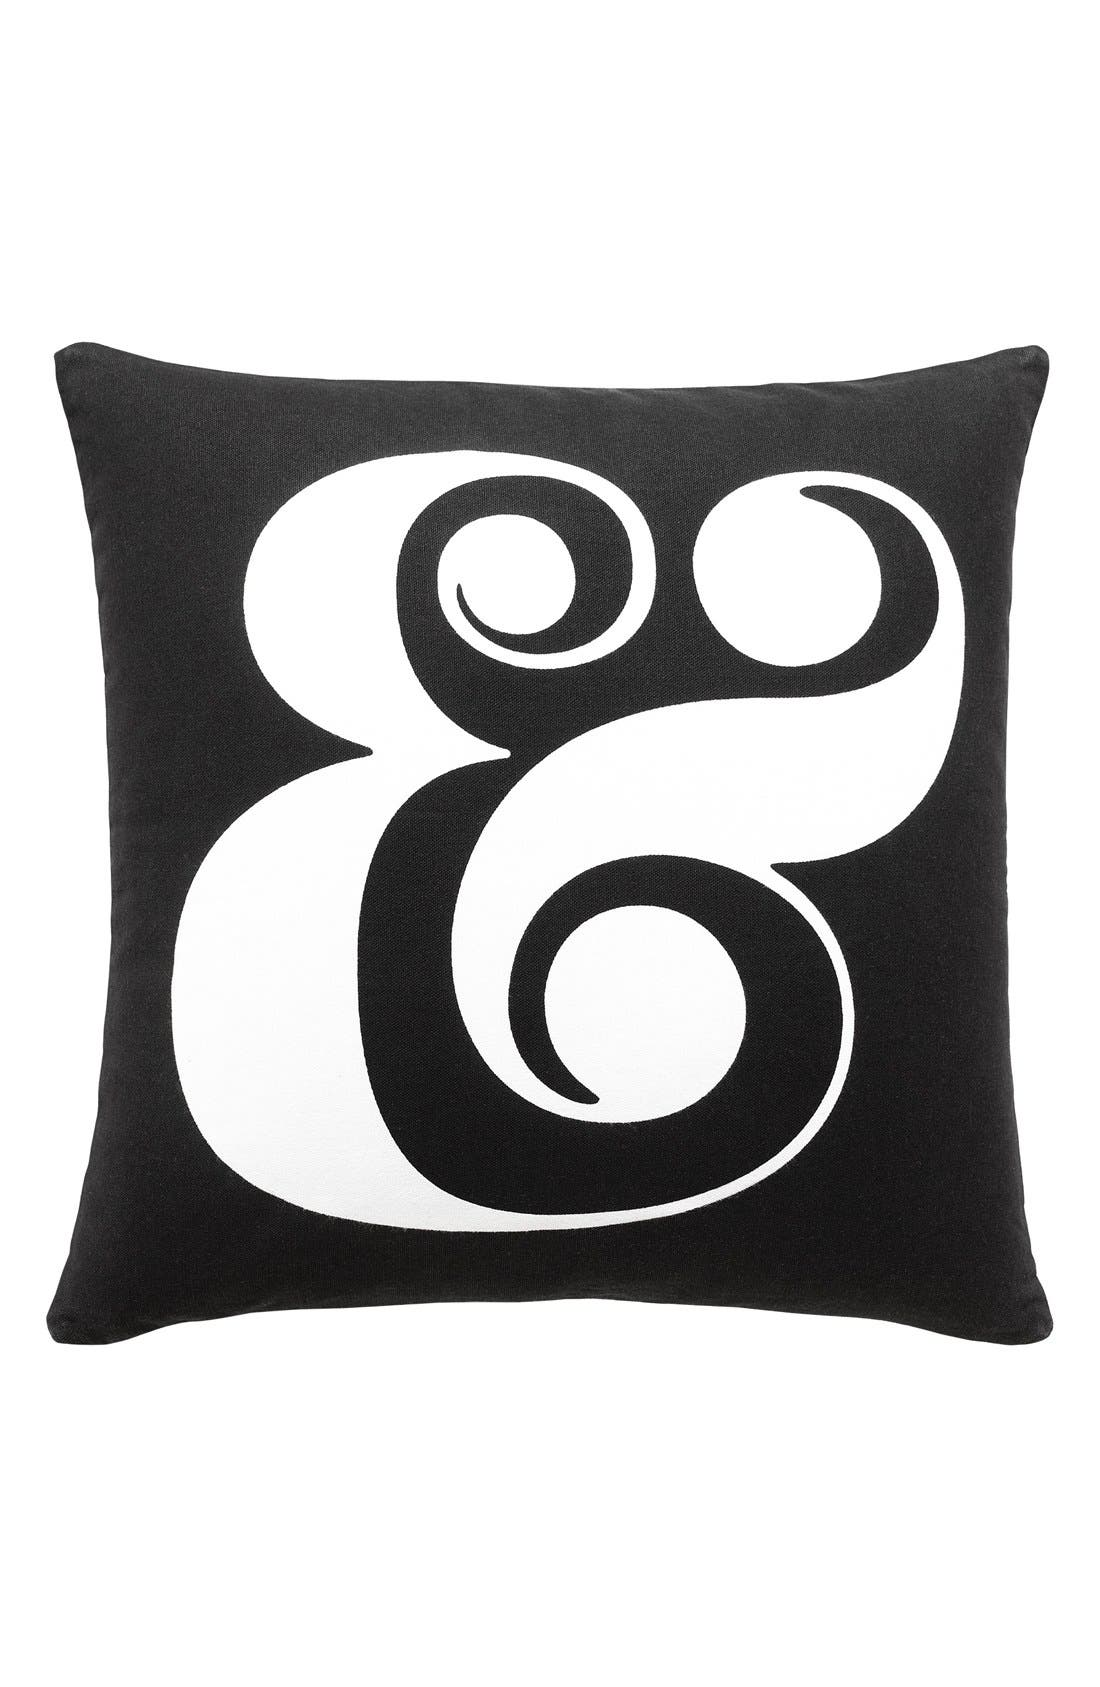 Alternate Image 1 Selected - kate spade new york 'ampersand' pillow